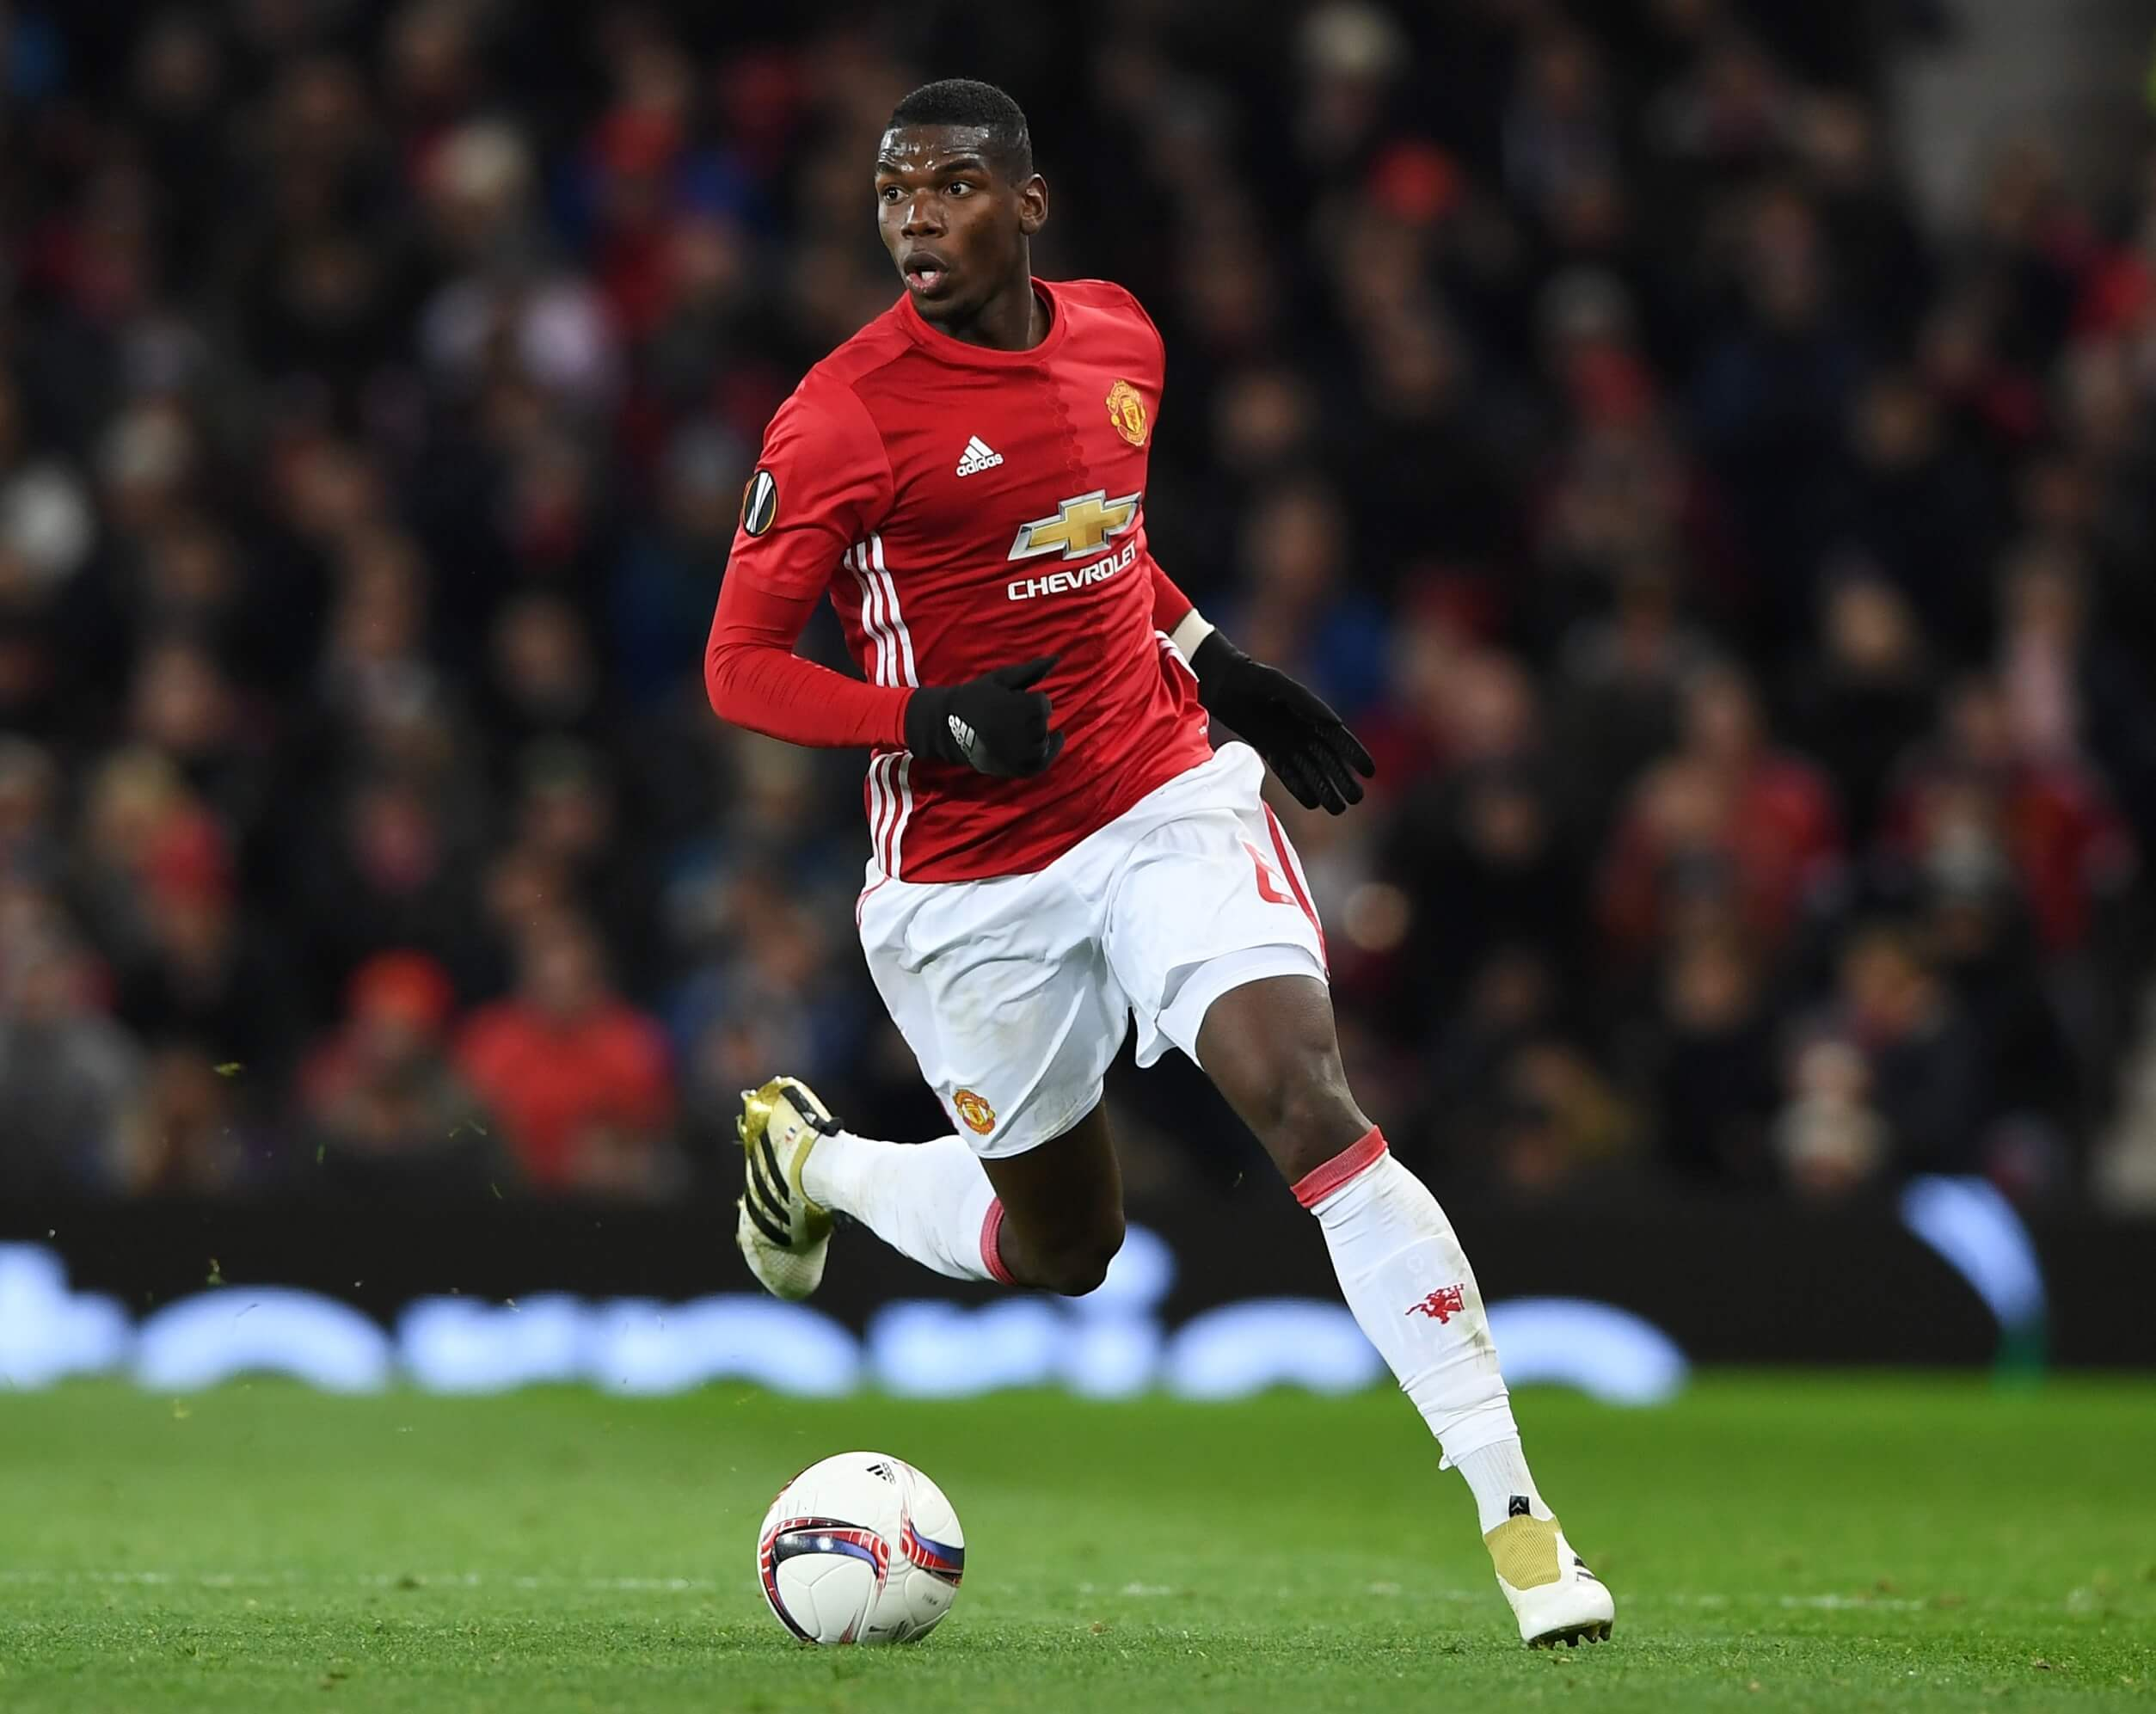 sch_blogarticle_55058_blogarticle_image_paul_pogba_manchester_united.jpg